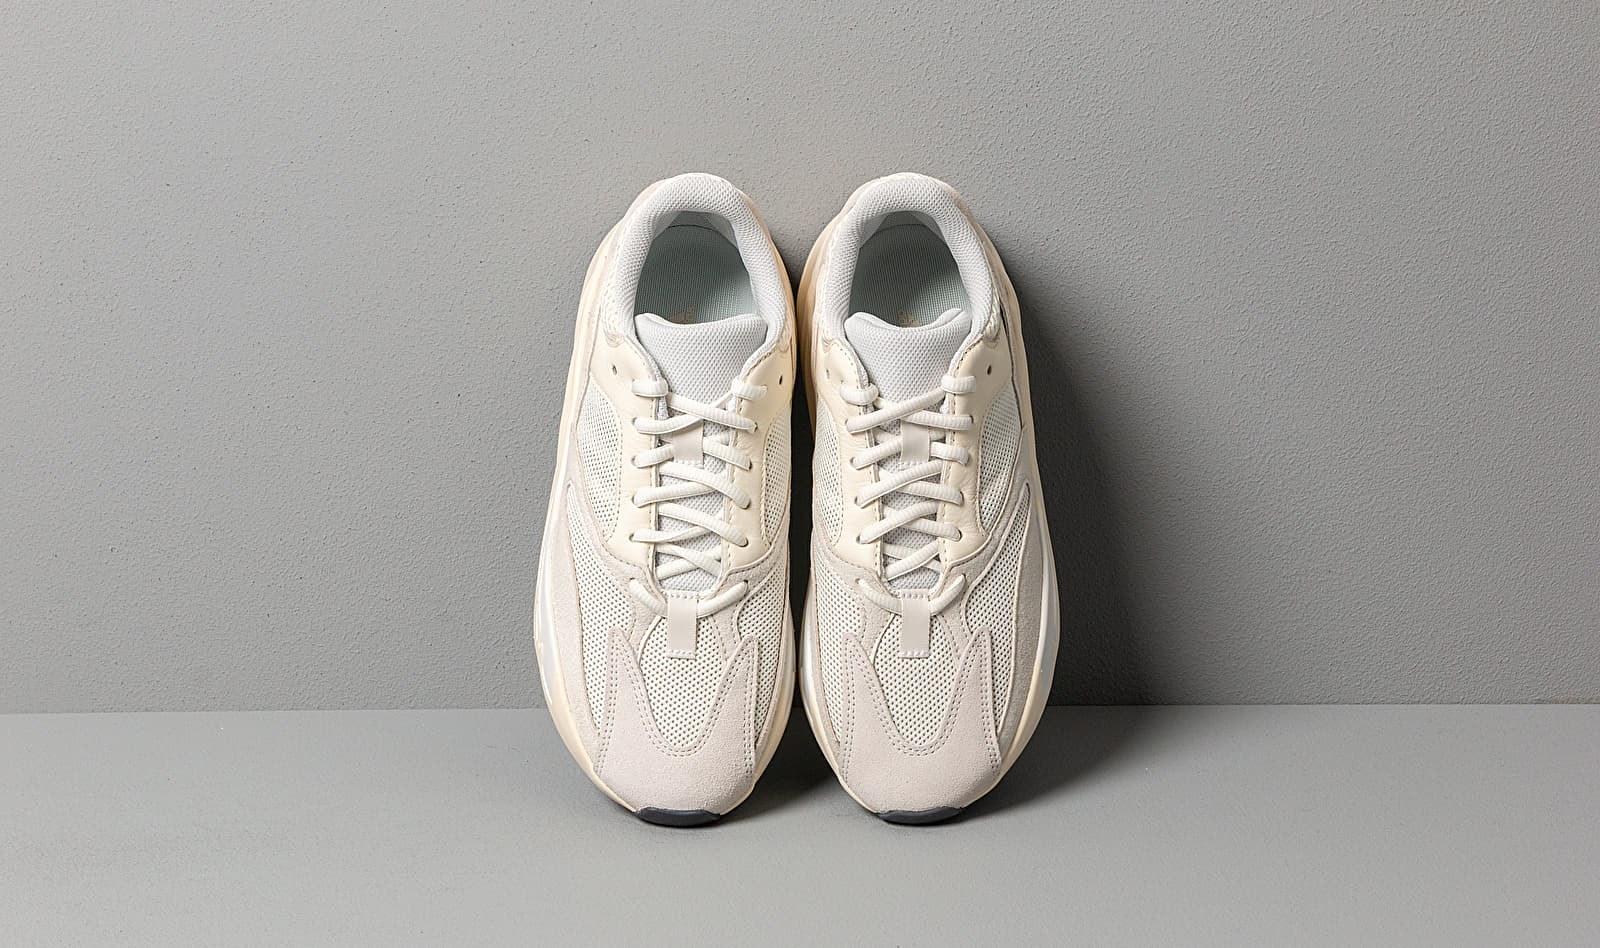 adidas Yeezy Boost 700 Analog/ Analog/ Analog, Brown